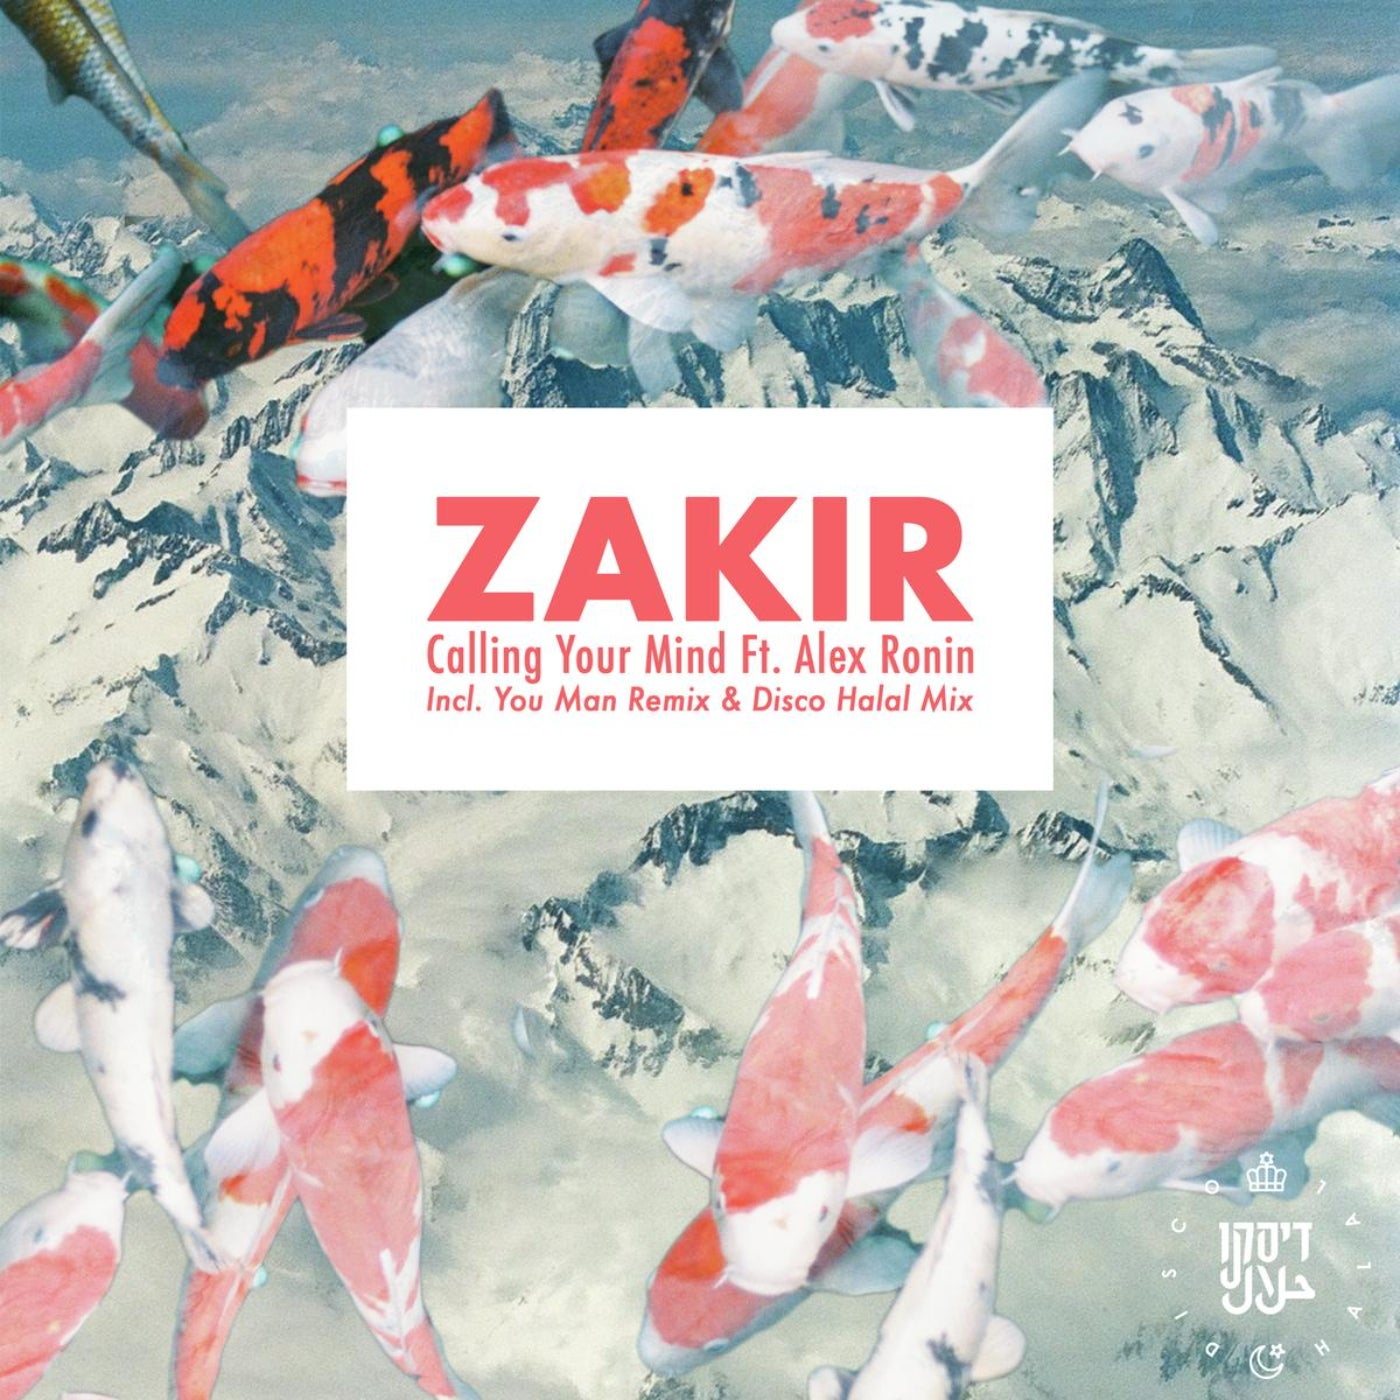 Zakir - Calling Your Mind (feat. Alex Ronin) (Extended)